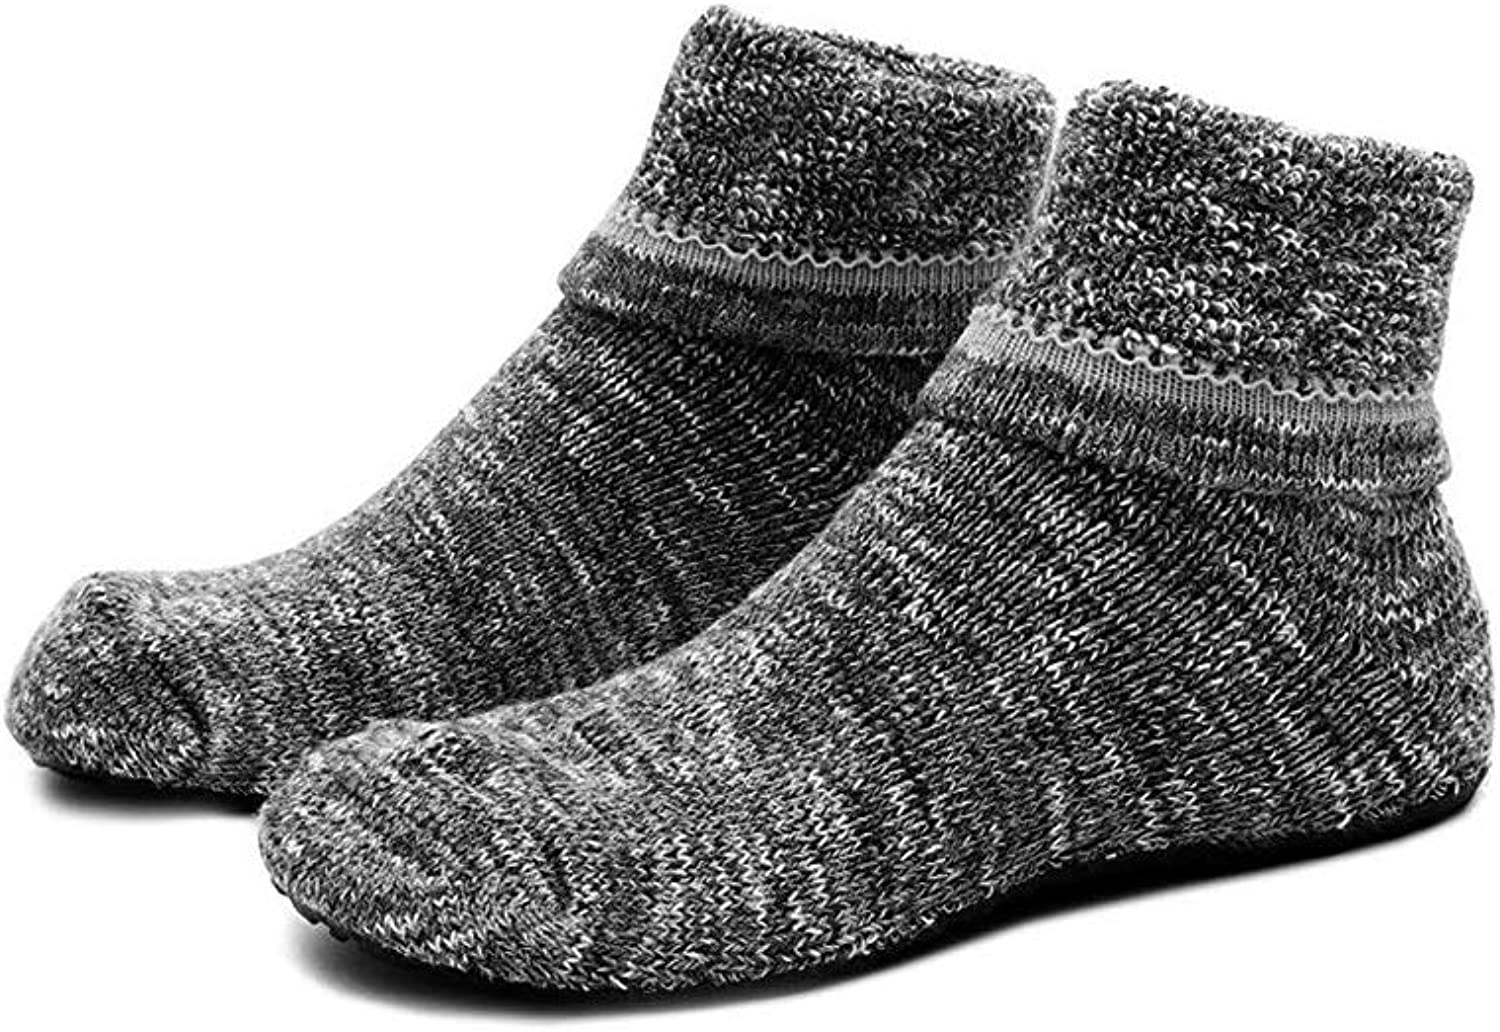 Womens Slipper Socks Cozy Indoor Socks Winter Warm Thicken Floor Socks, Size 4-9.5